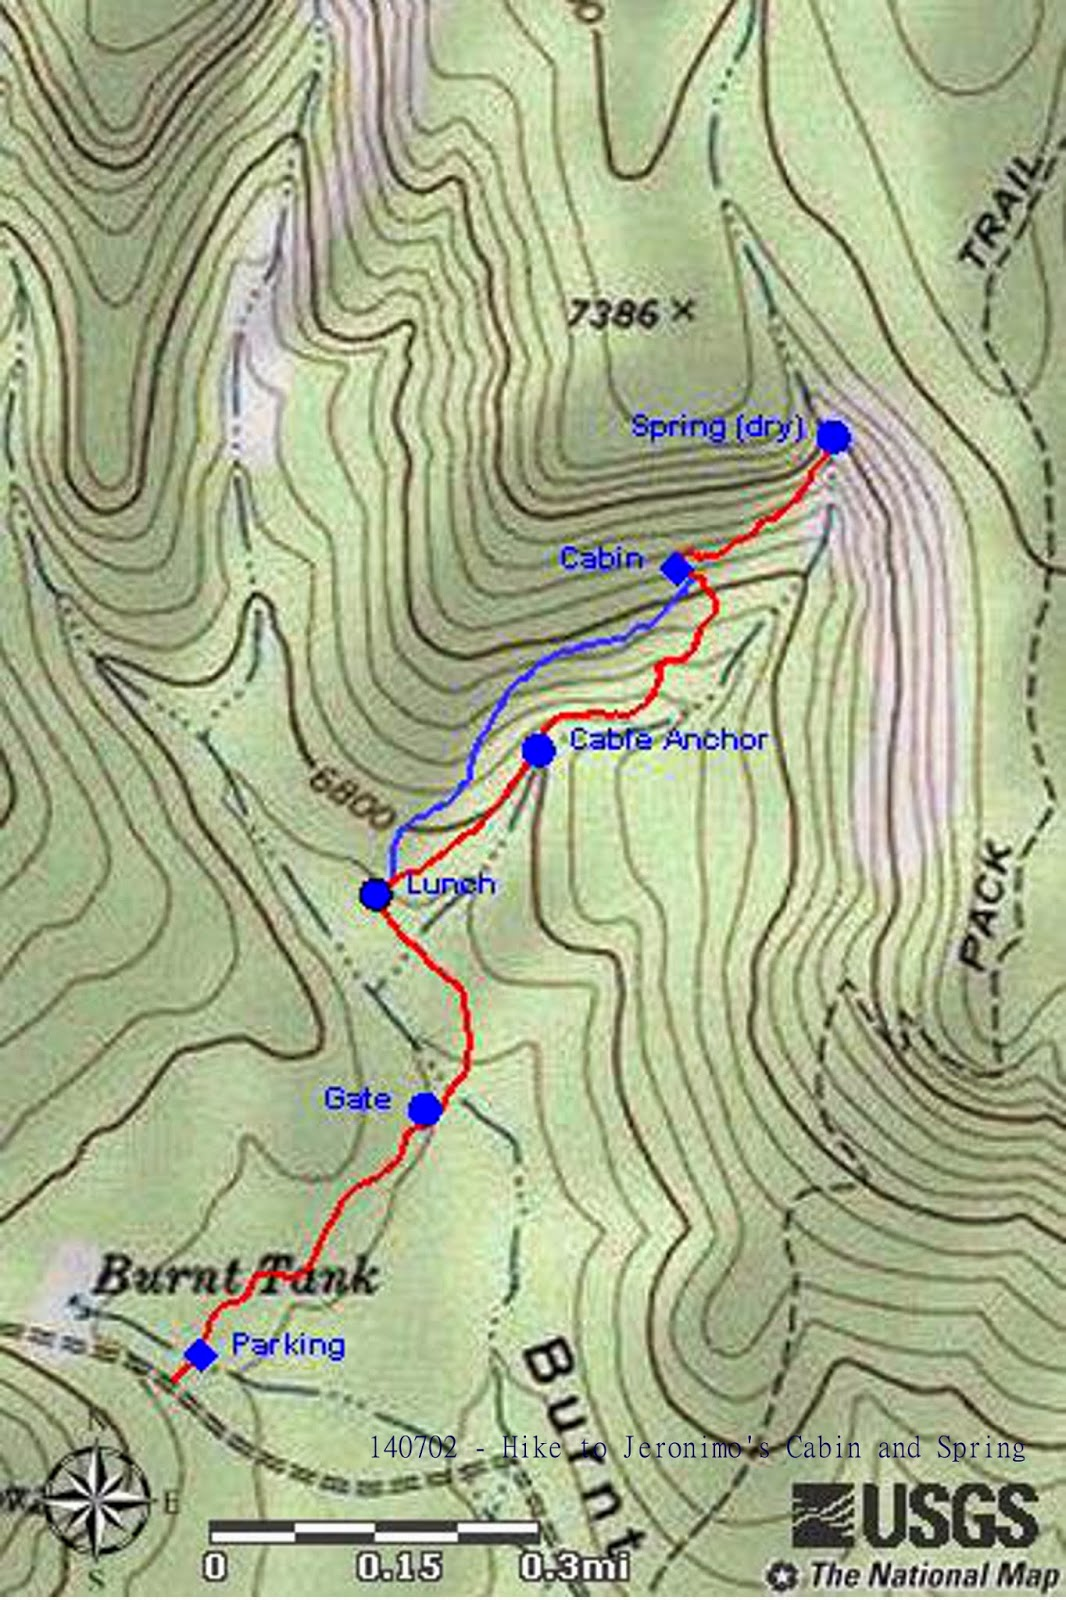 7196 feet and the total ascent was 860 feet the distance from fr 413 to the cabin was 1 1 miles and the distance from the cabin to the spring was 0 2